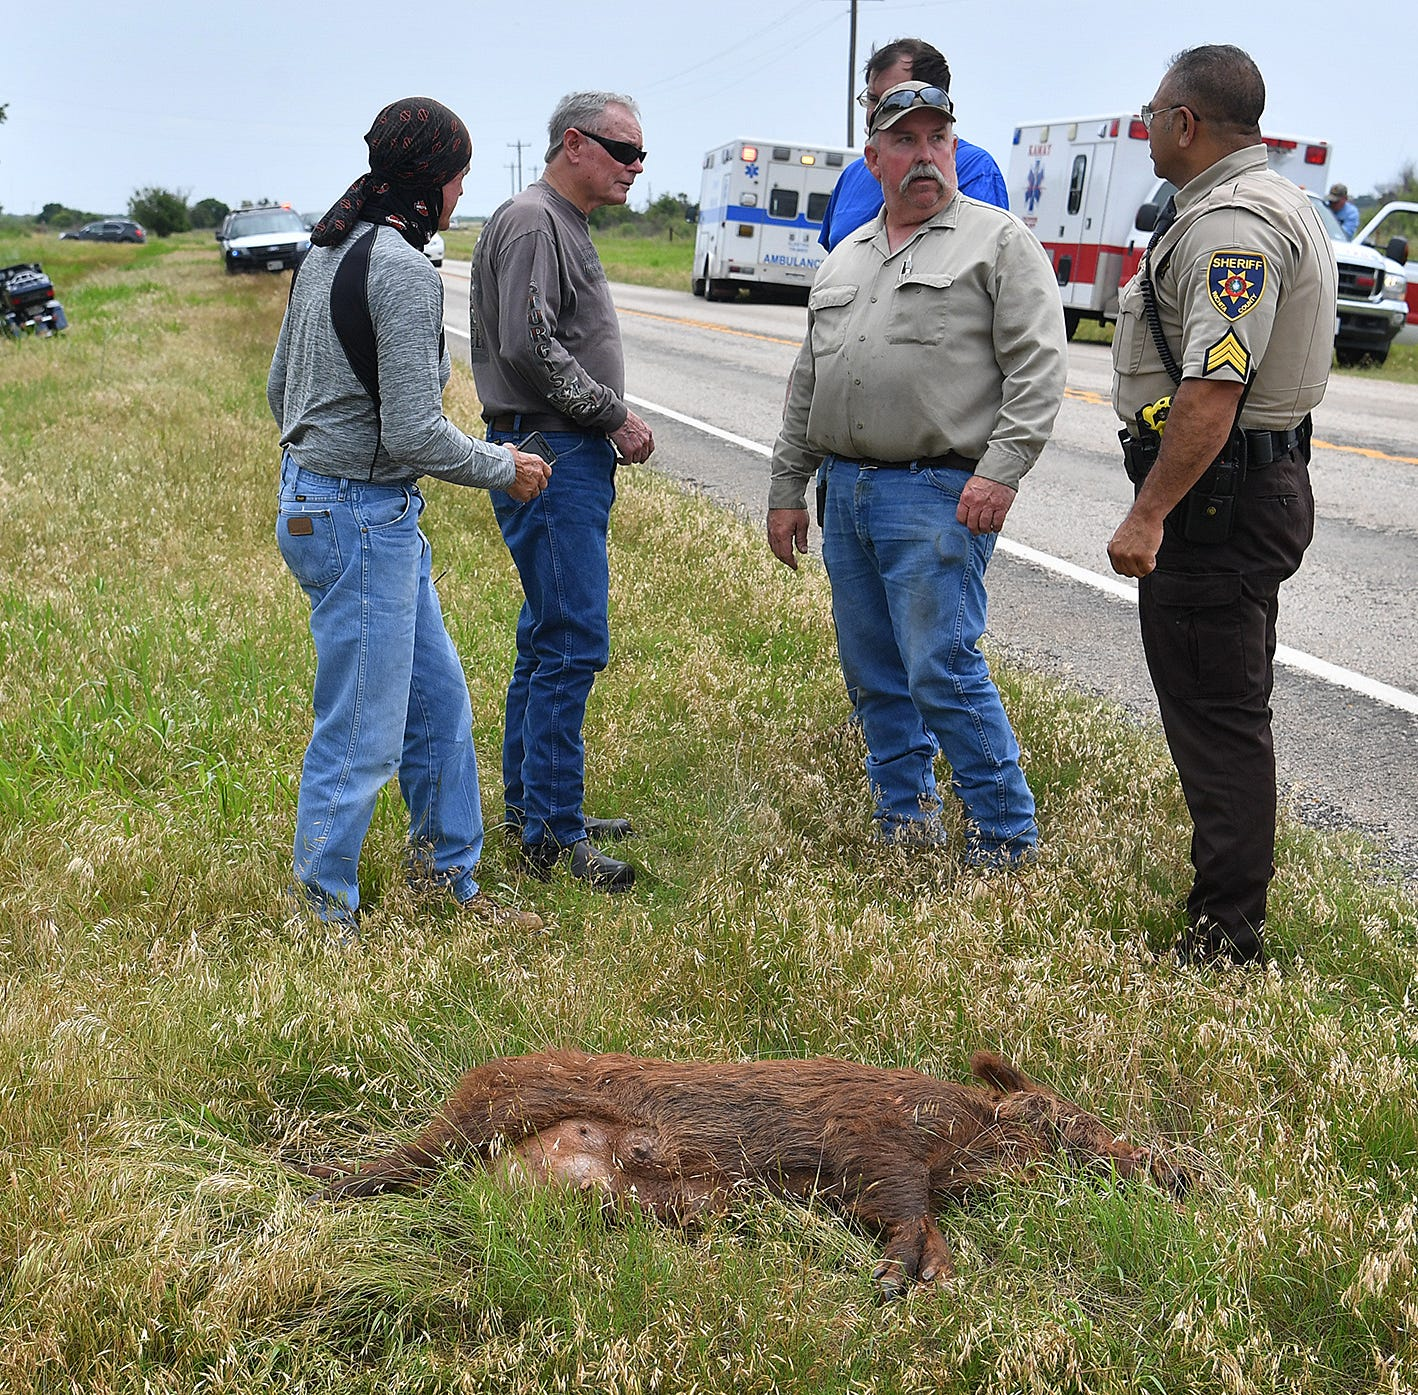 Motorcyclist injured after hitting feral hog